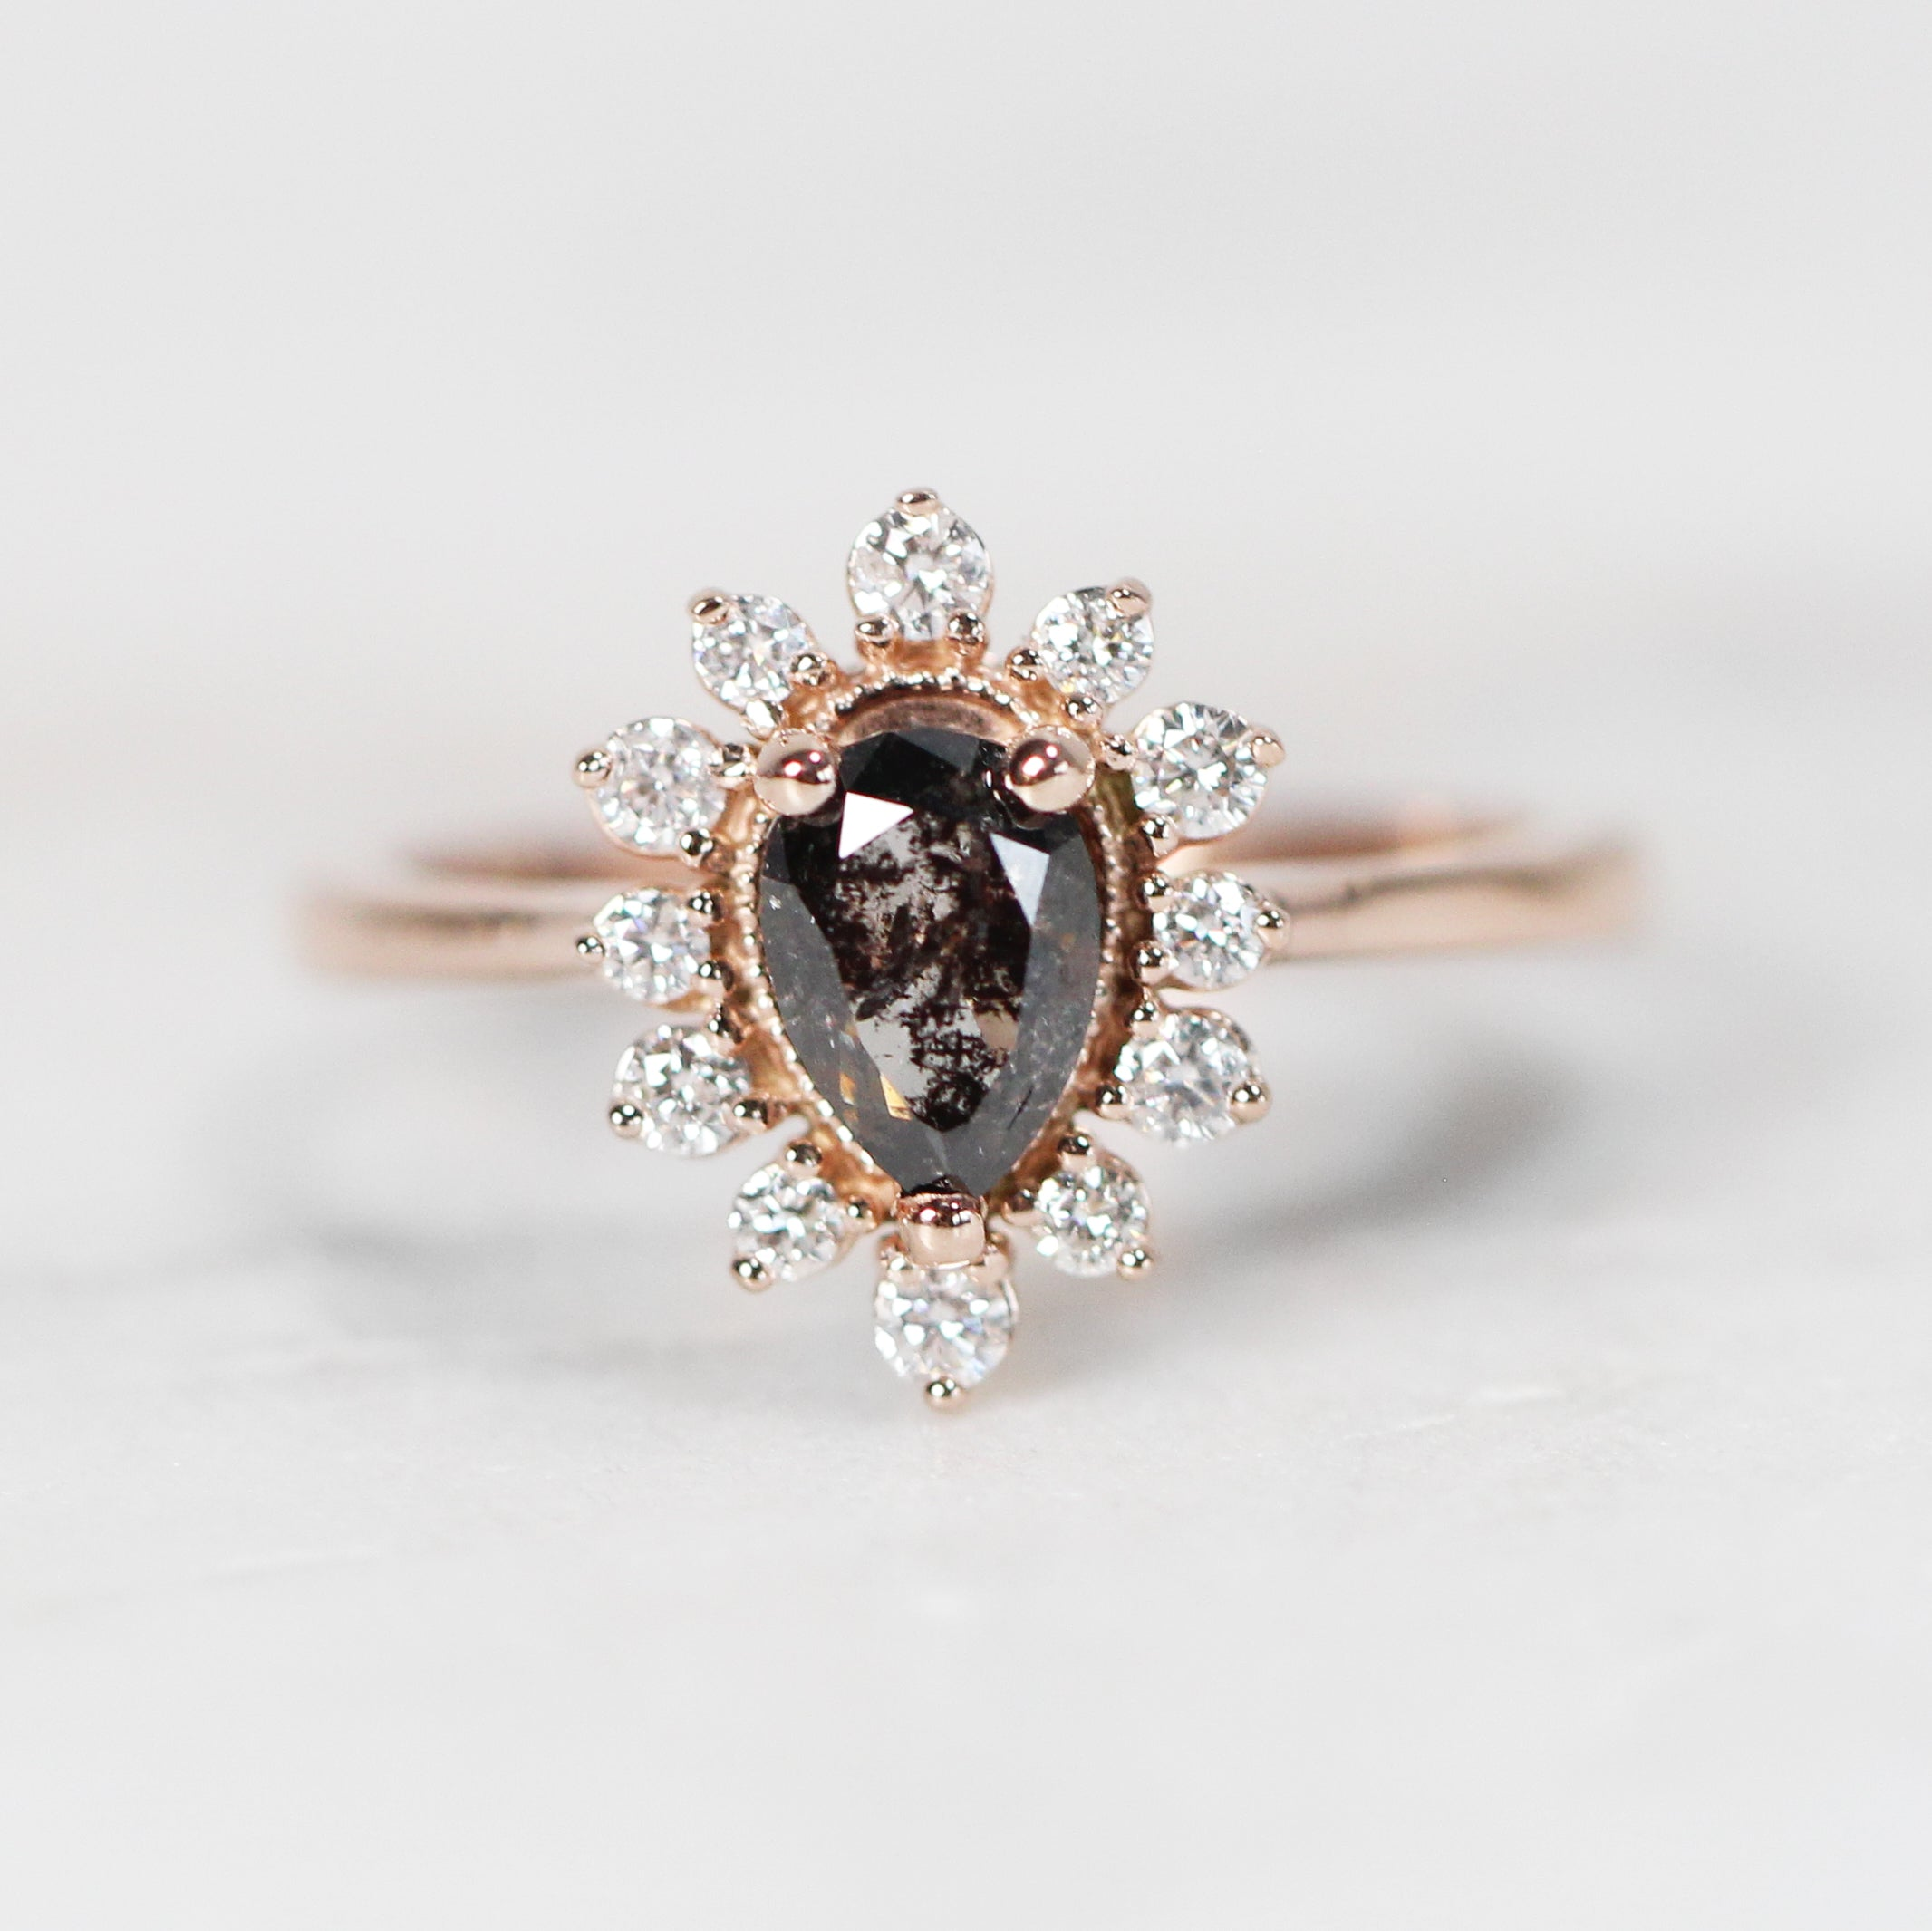 Lucy Ring with .93 Carat Pear Celestial Diamond in 10k Rose Gold - Ready to Size and Ship - Salt & Pepper Celestial Diamond Engagement Rings and Wedding Bands  by Midwinter Co.